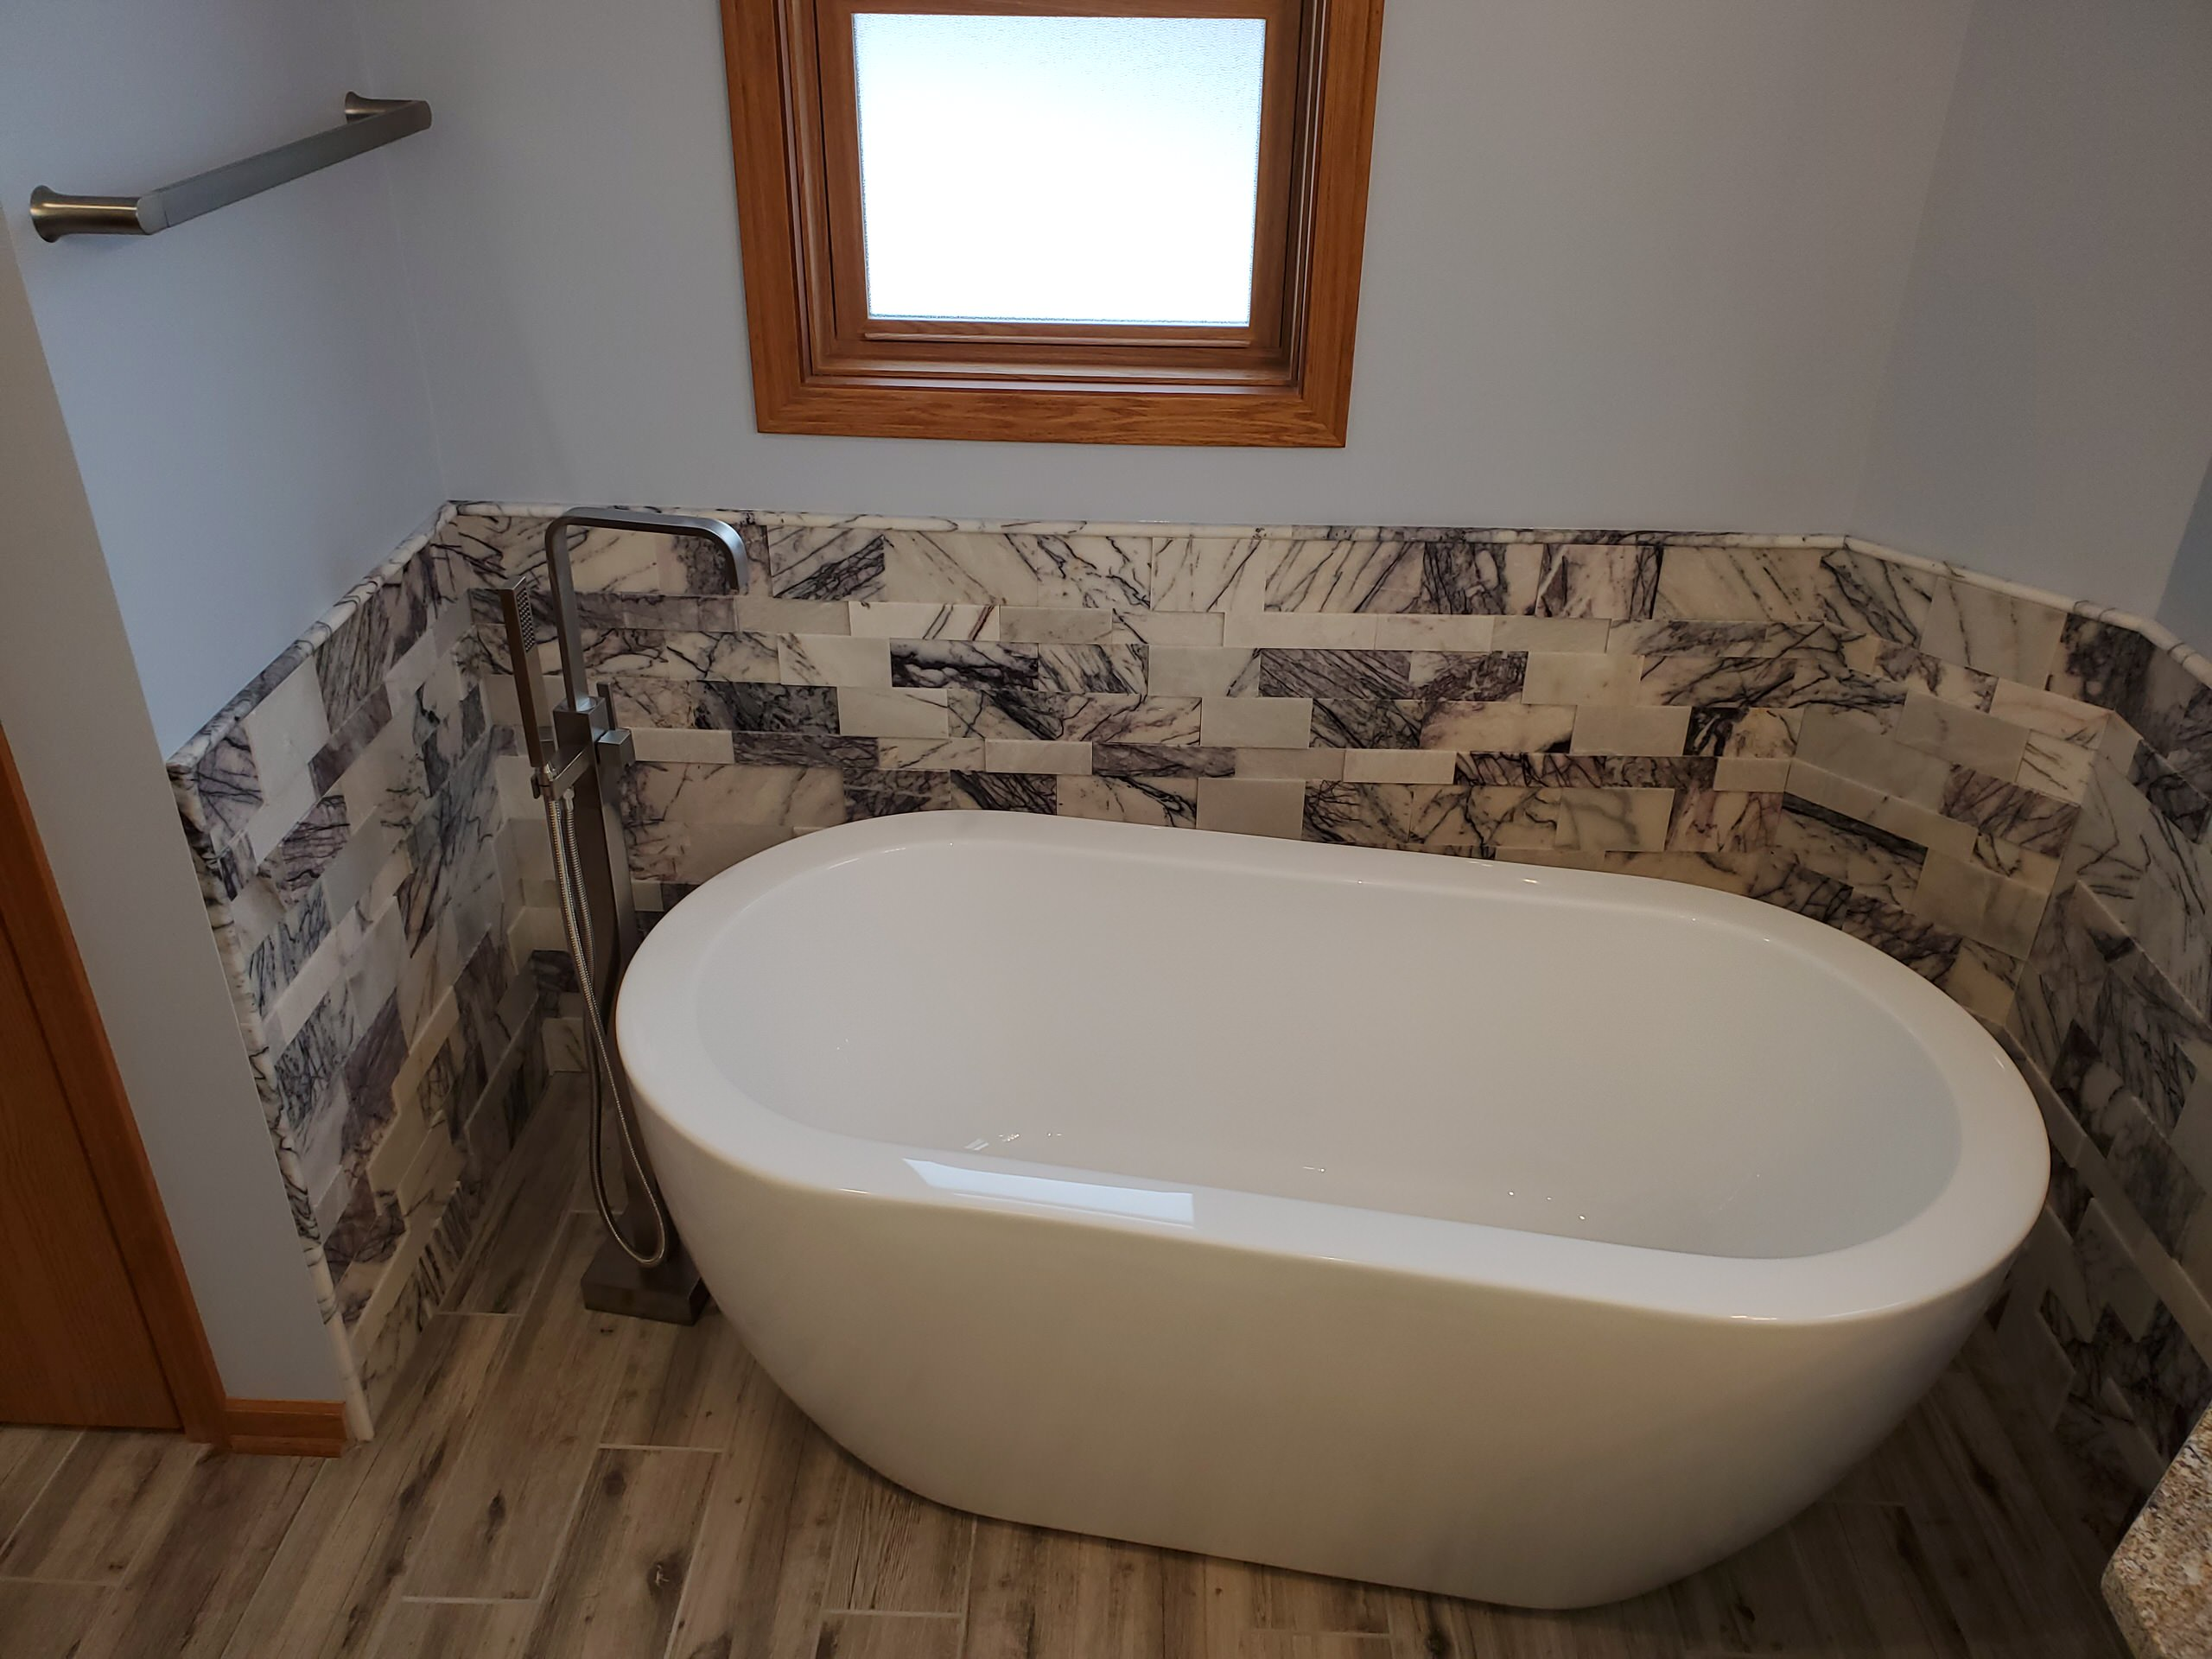 Free standing tub in redesigned master bathroom